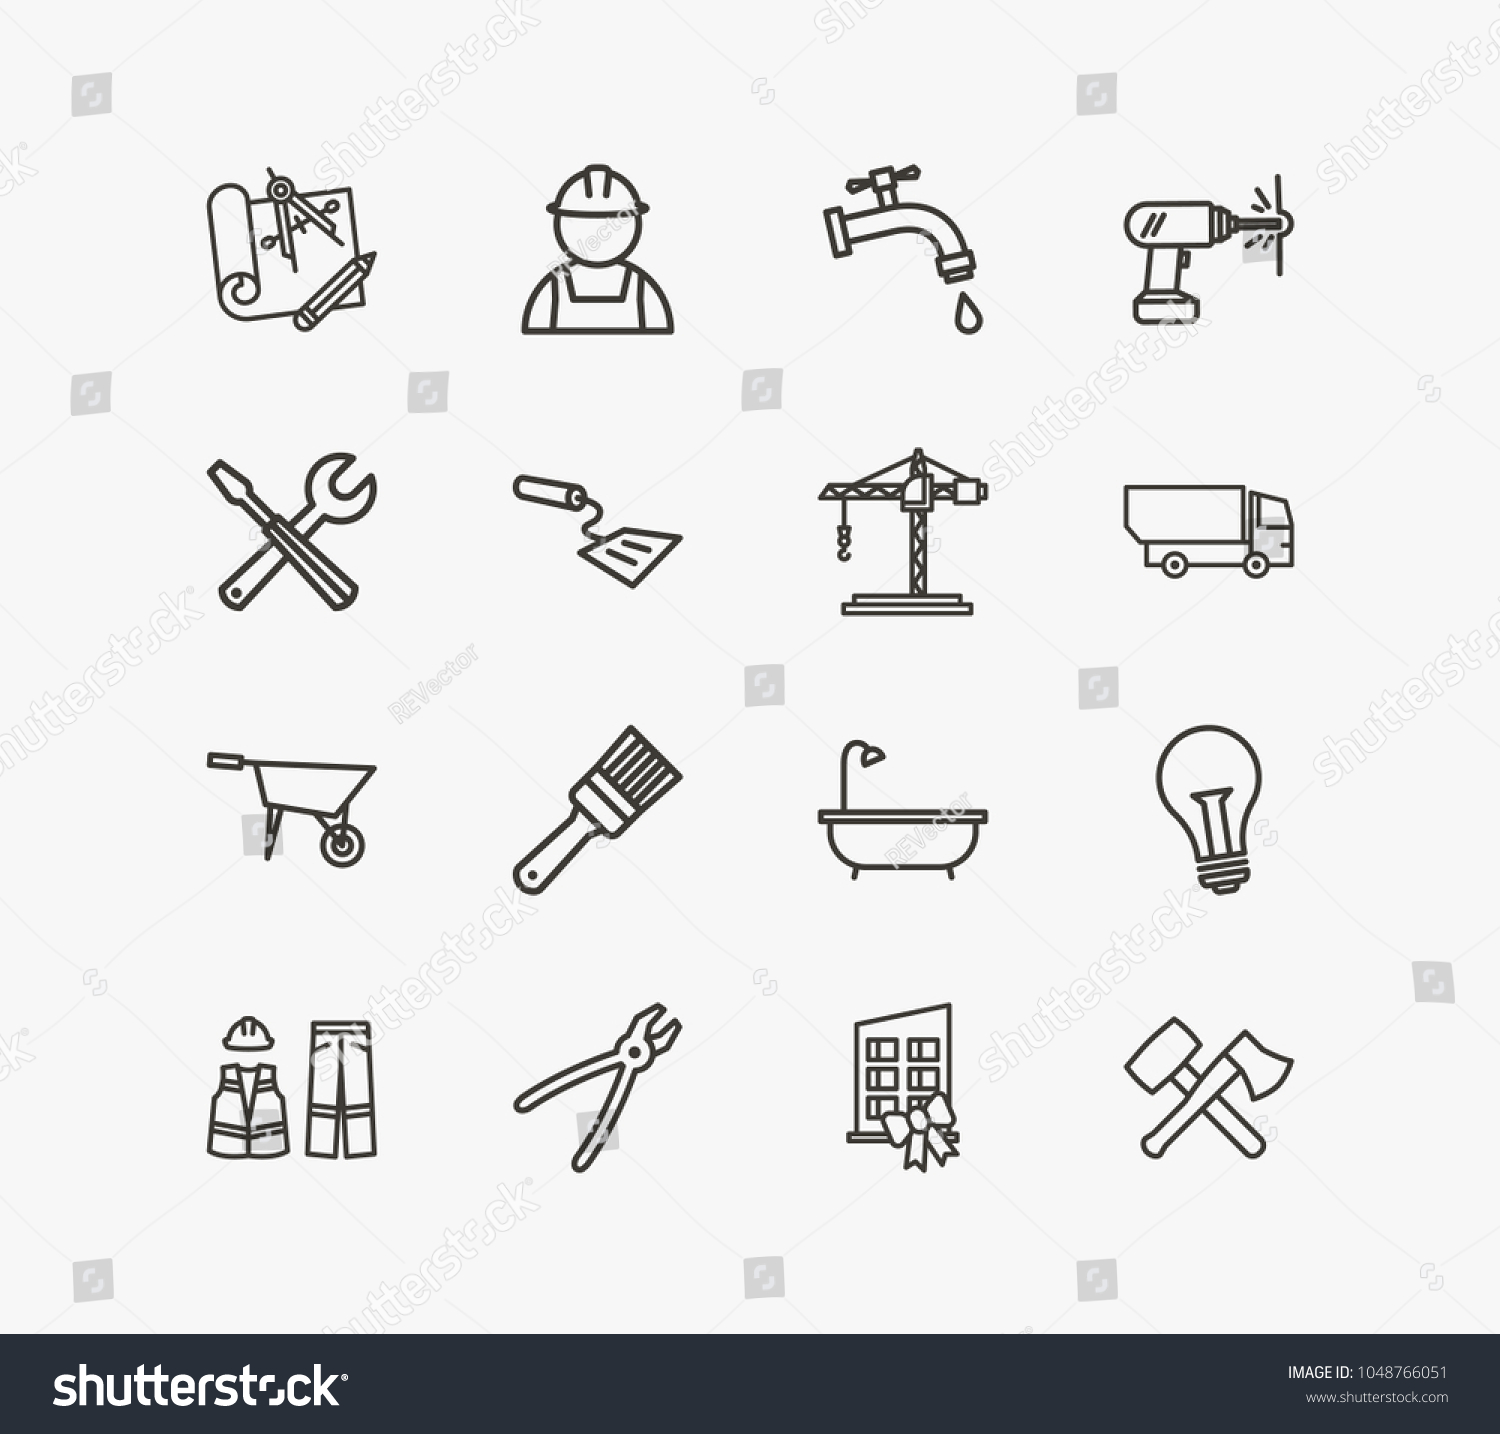 Industrial icon set tools new building stock vector royalty free industrial icon set and tools with new building spatula and engineering blueprint acrylic related malvernweather Gallery